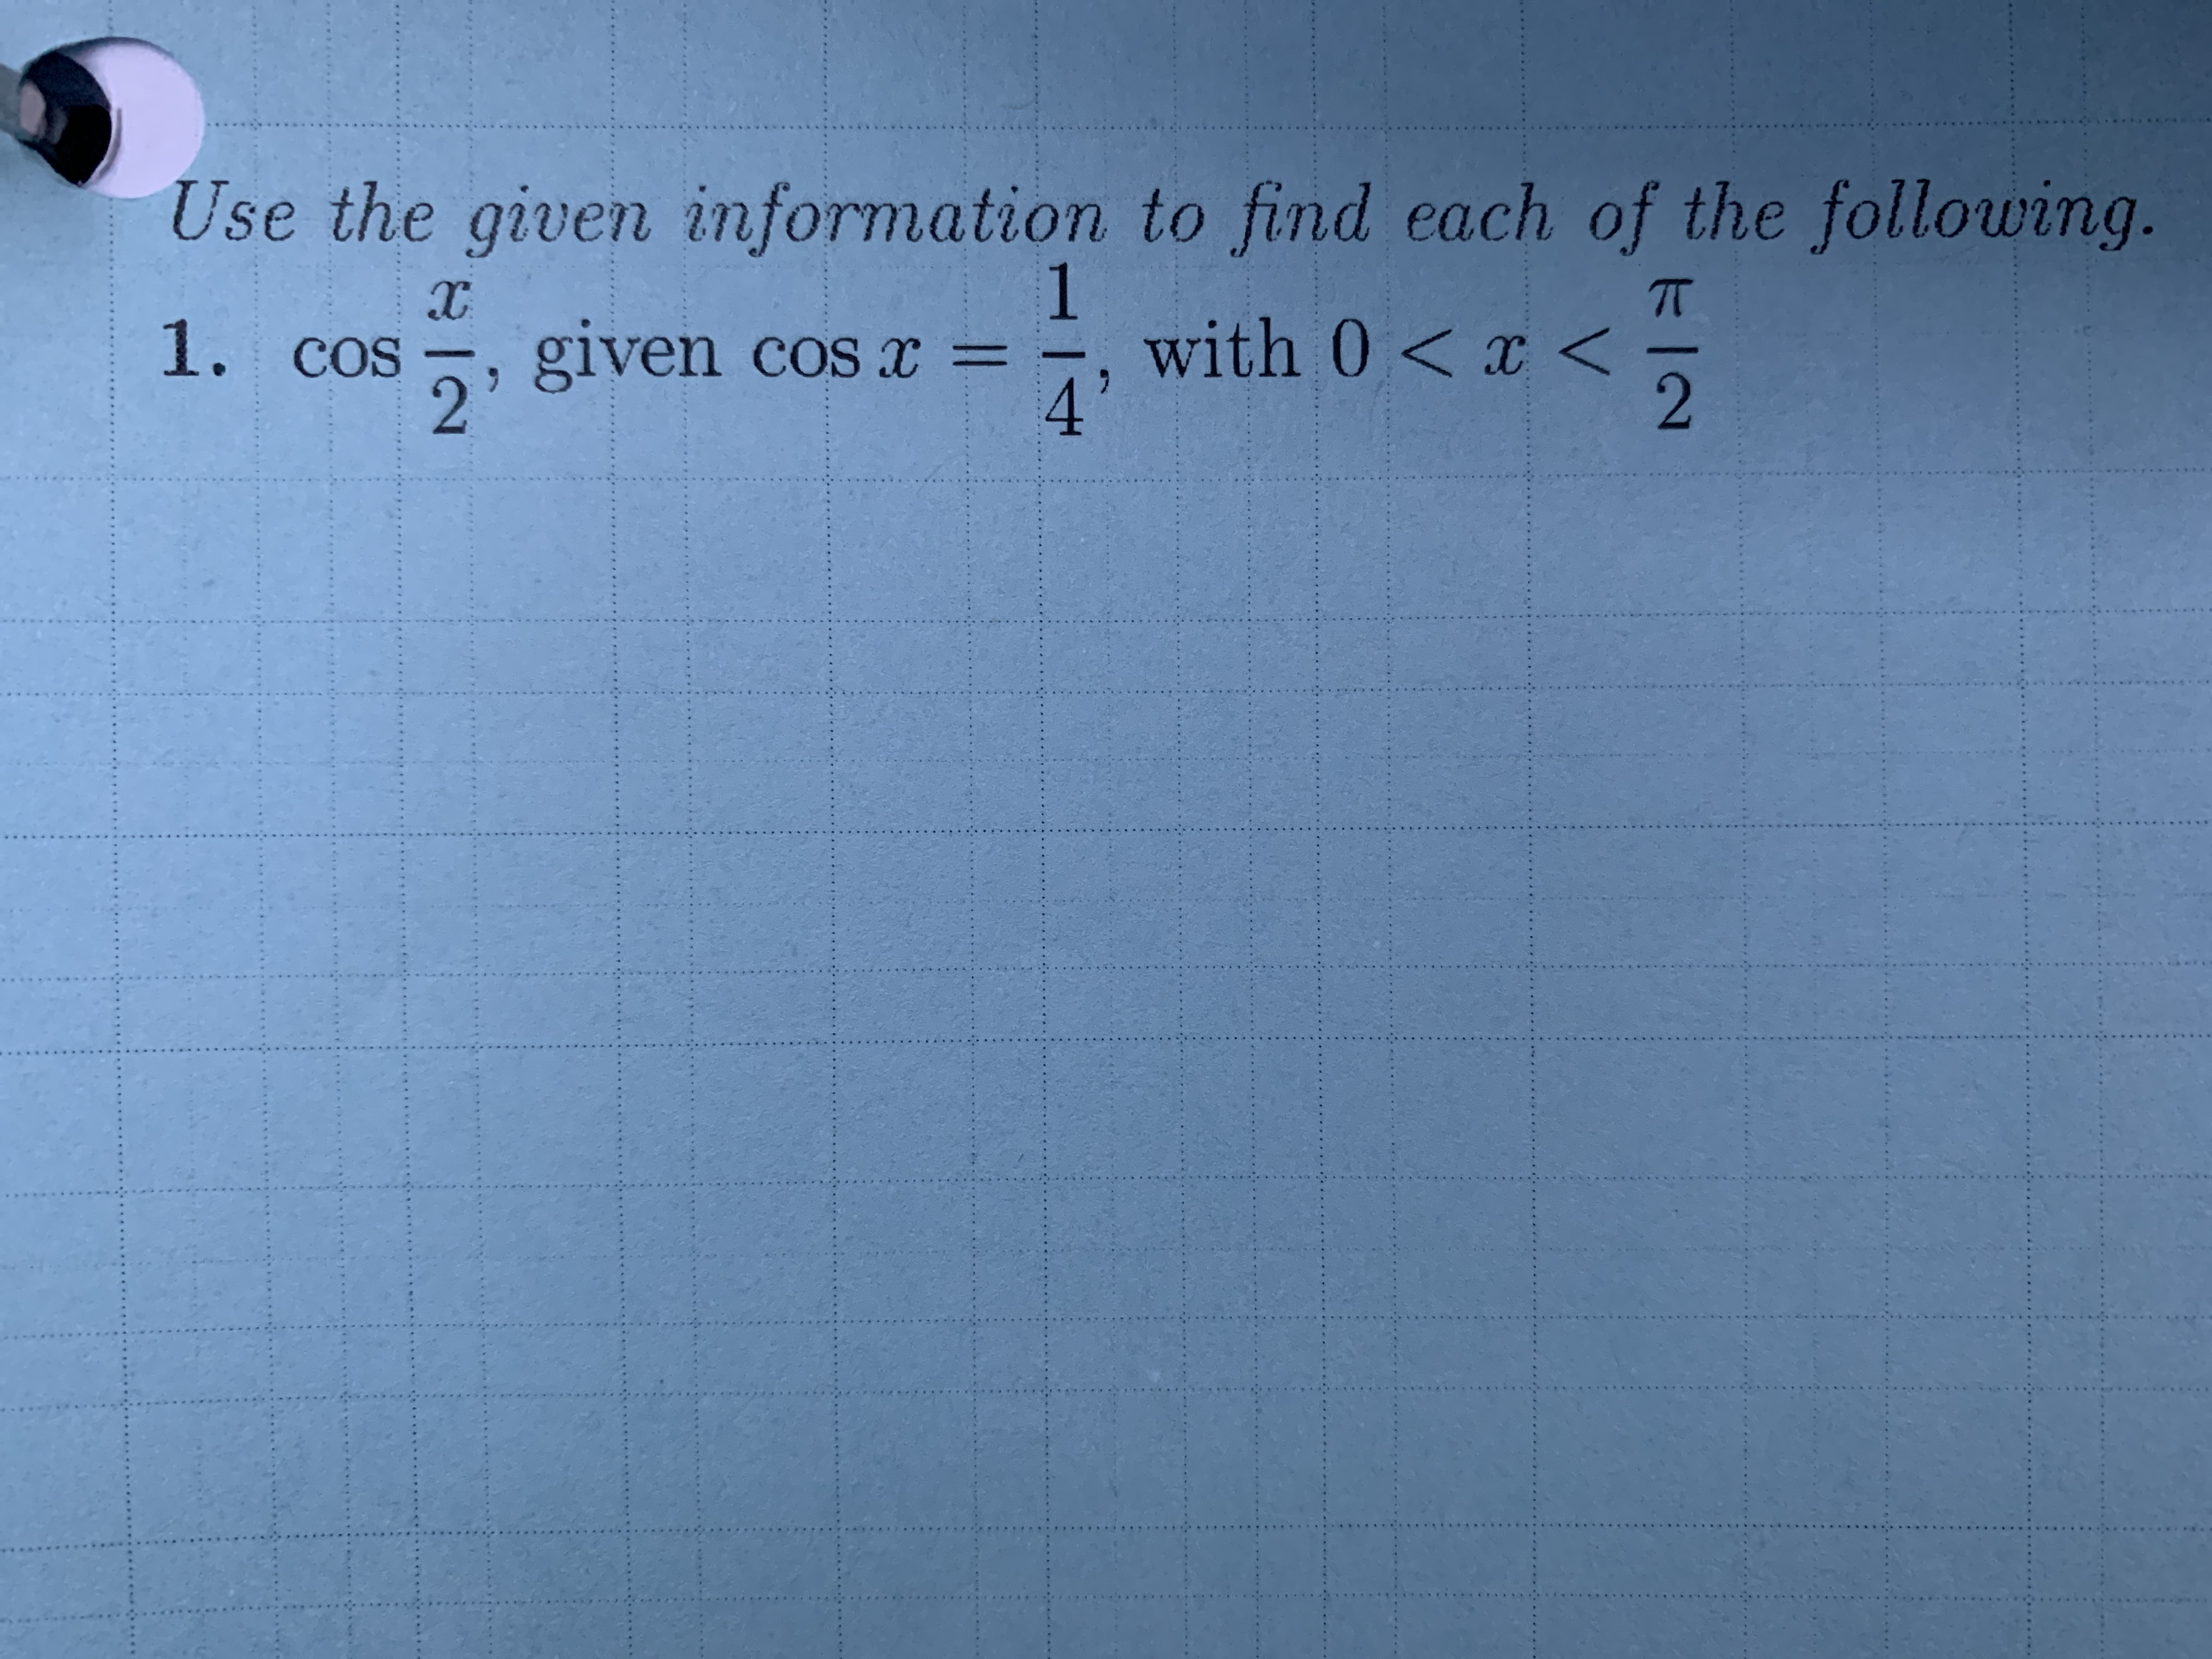 Use the given information to find each of the following. 1 with 0 x< 4 1. cos given cos x = 2' 2